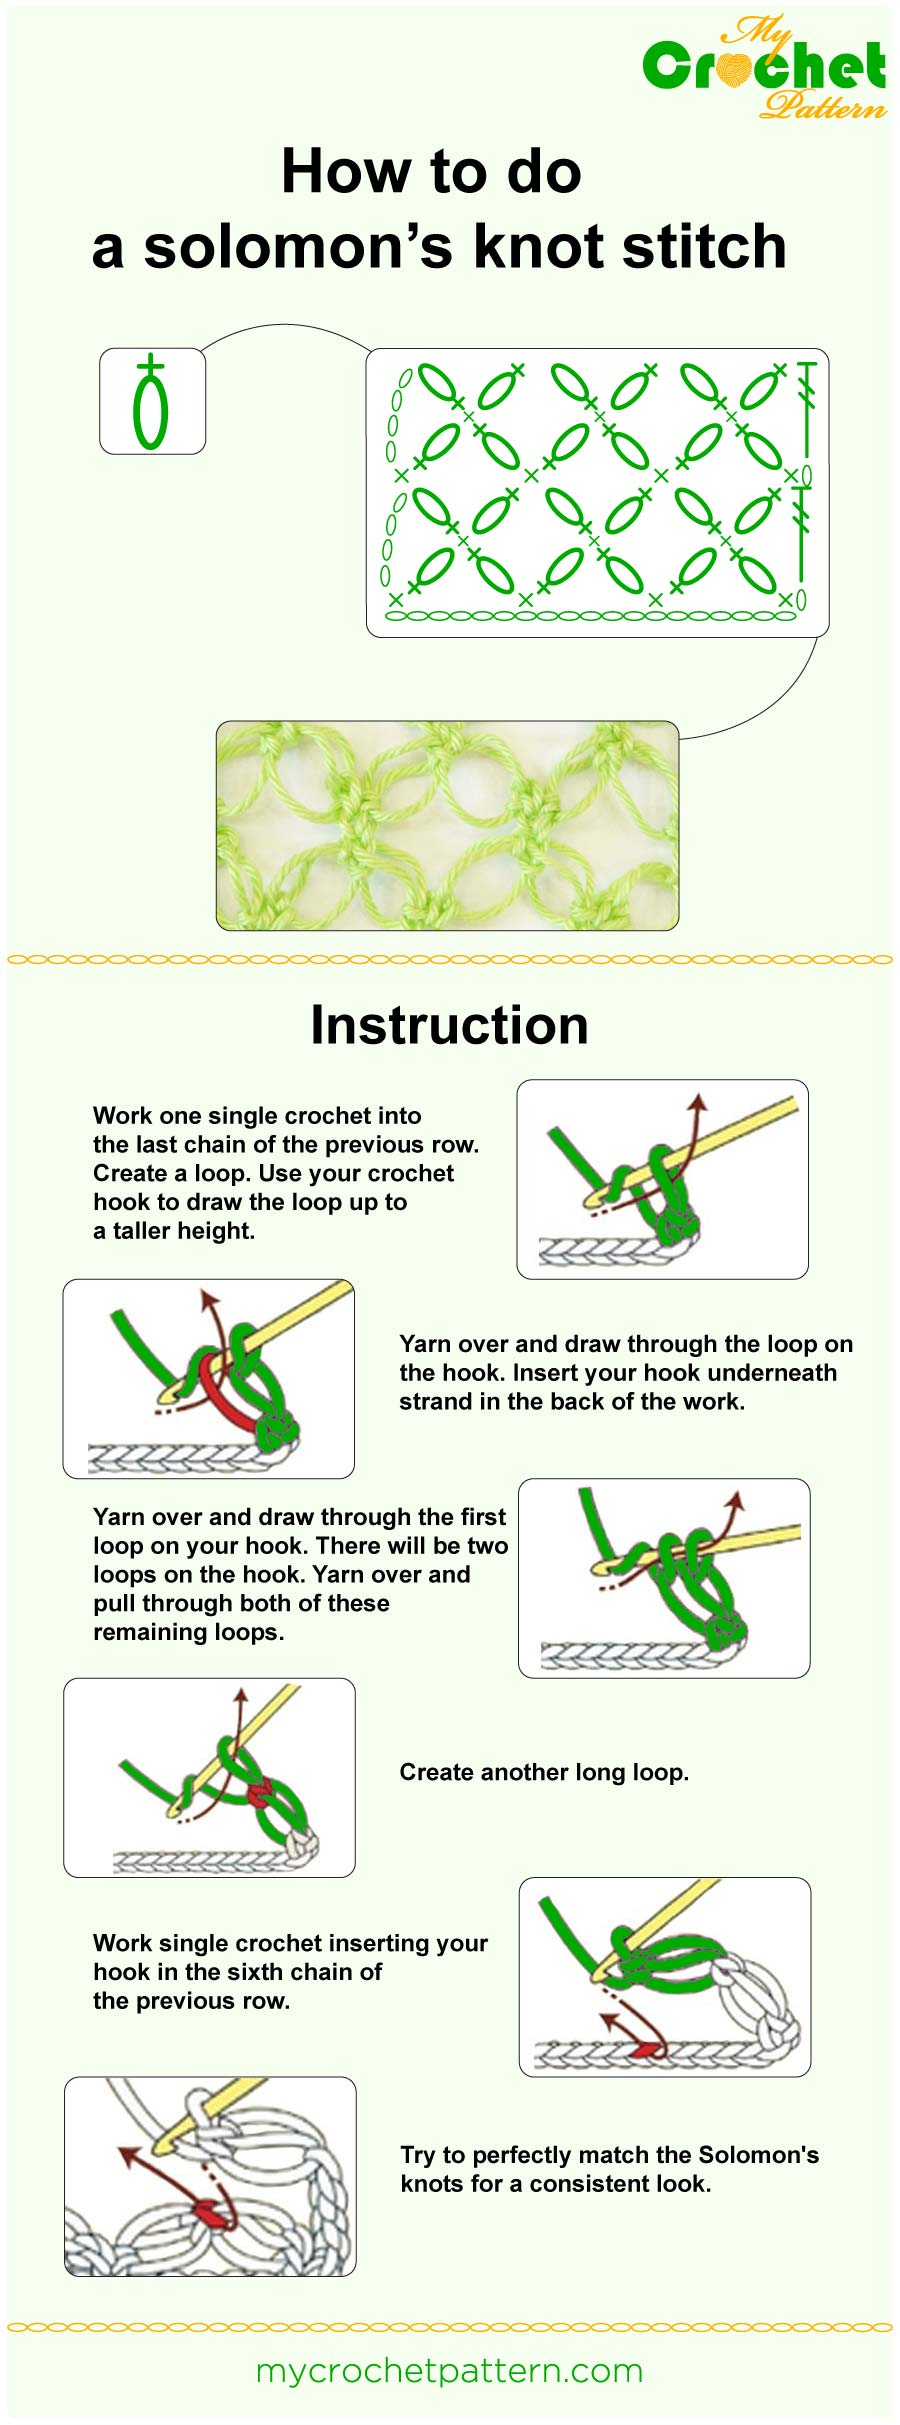 how to do a solomon's knot stitch - infographic